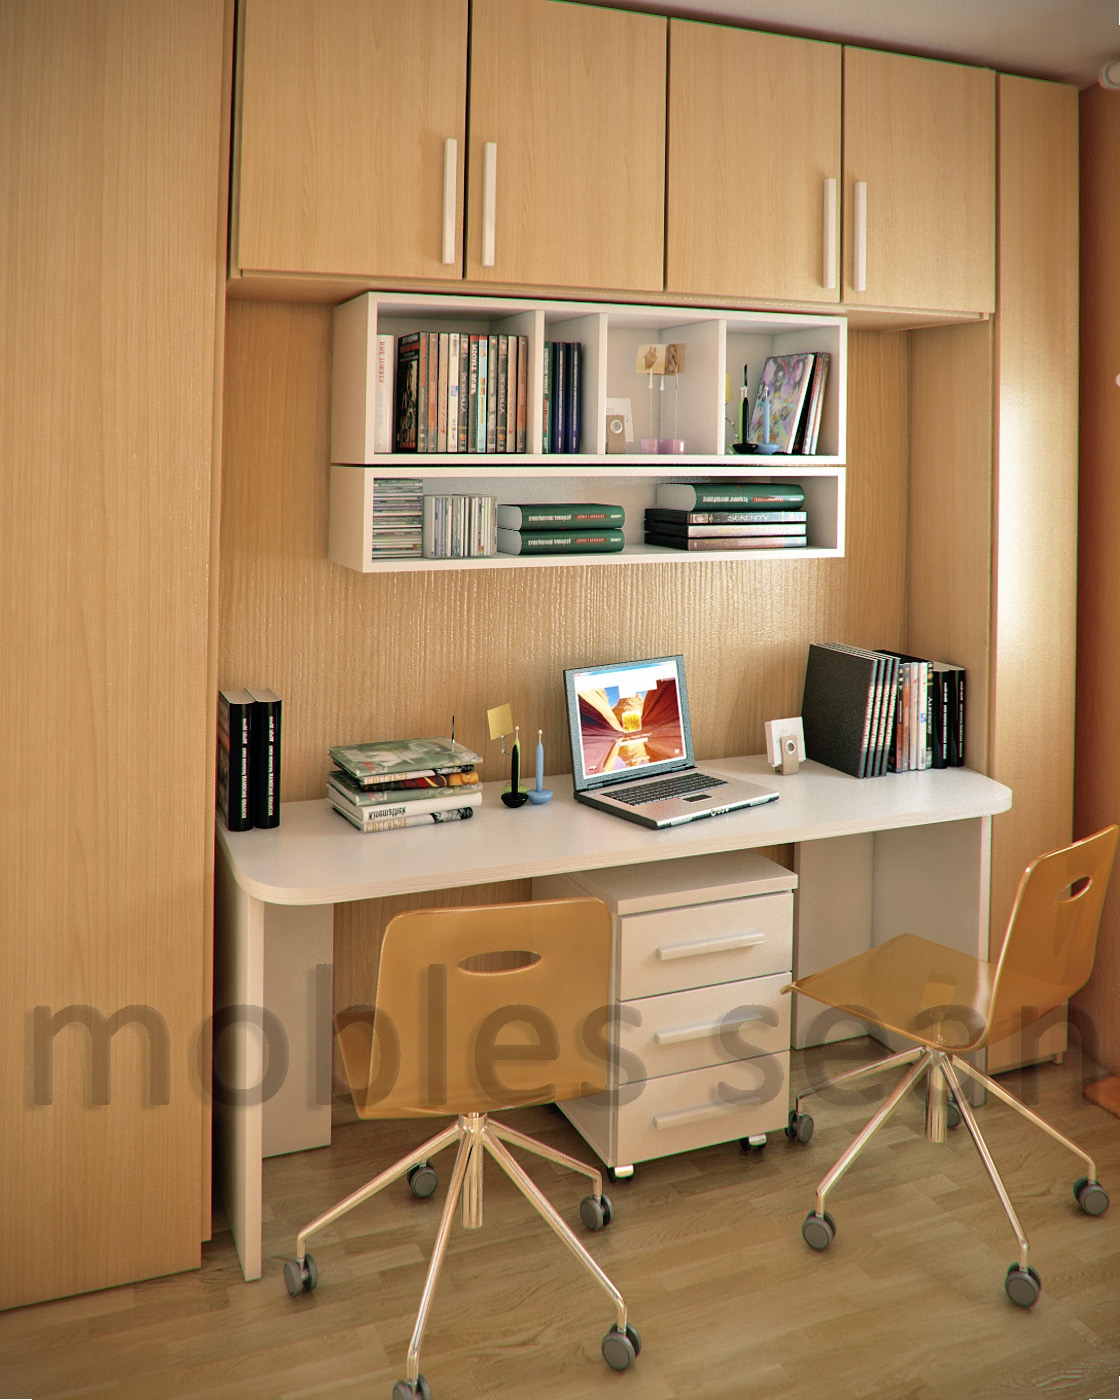 Small Study Room Ideas Space Saving Designs For Small Kids Rooms